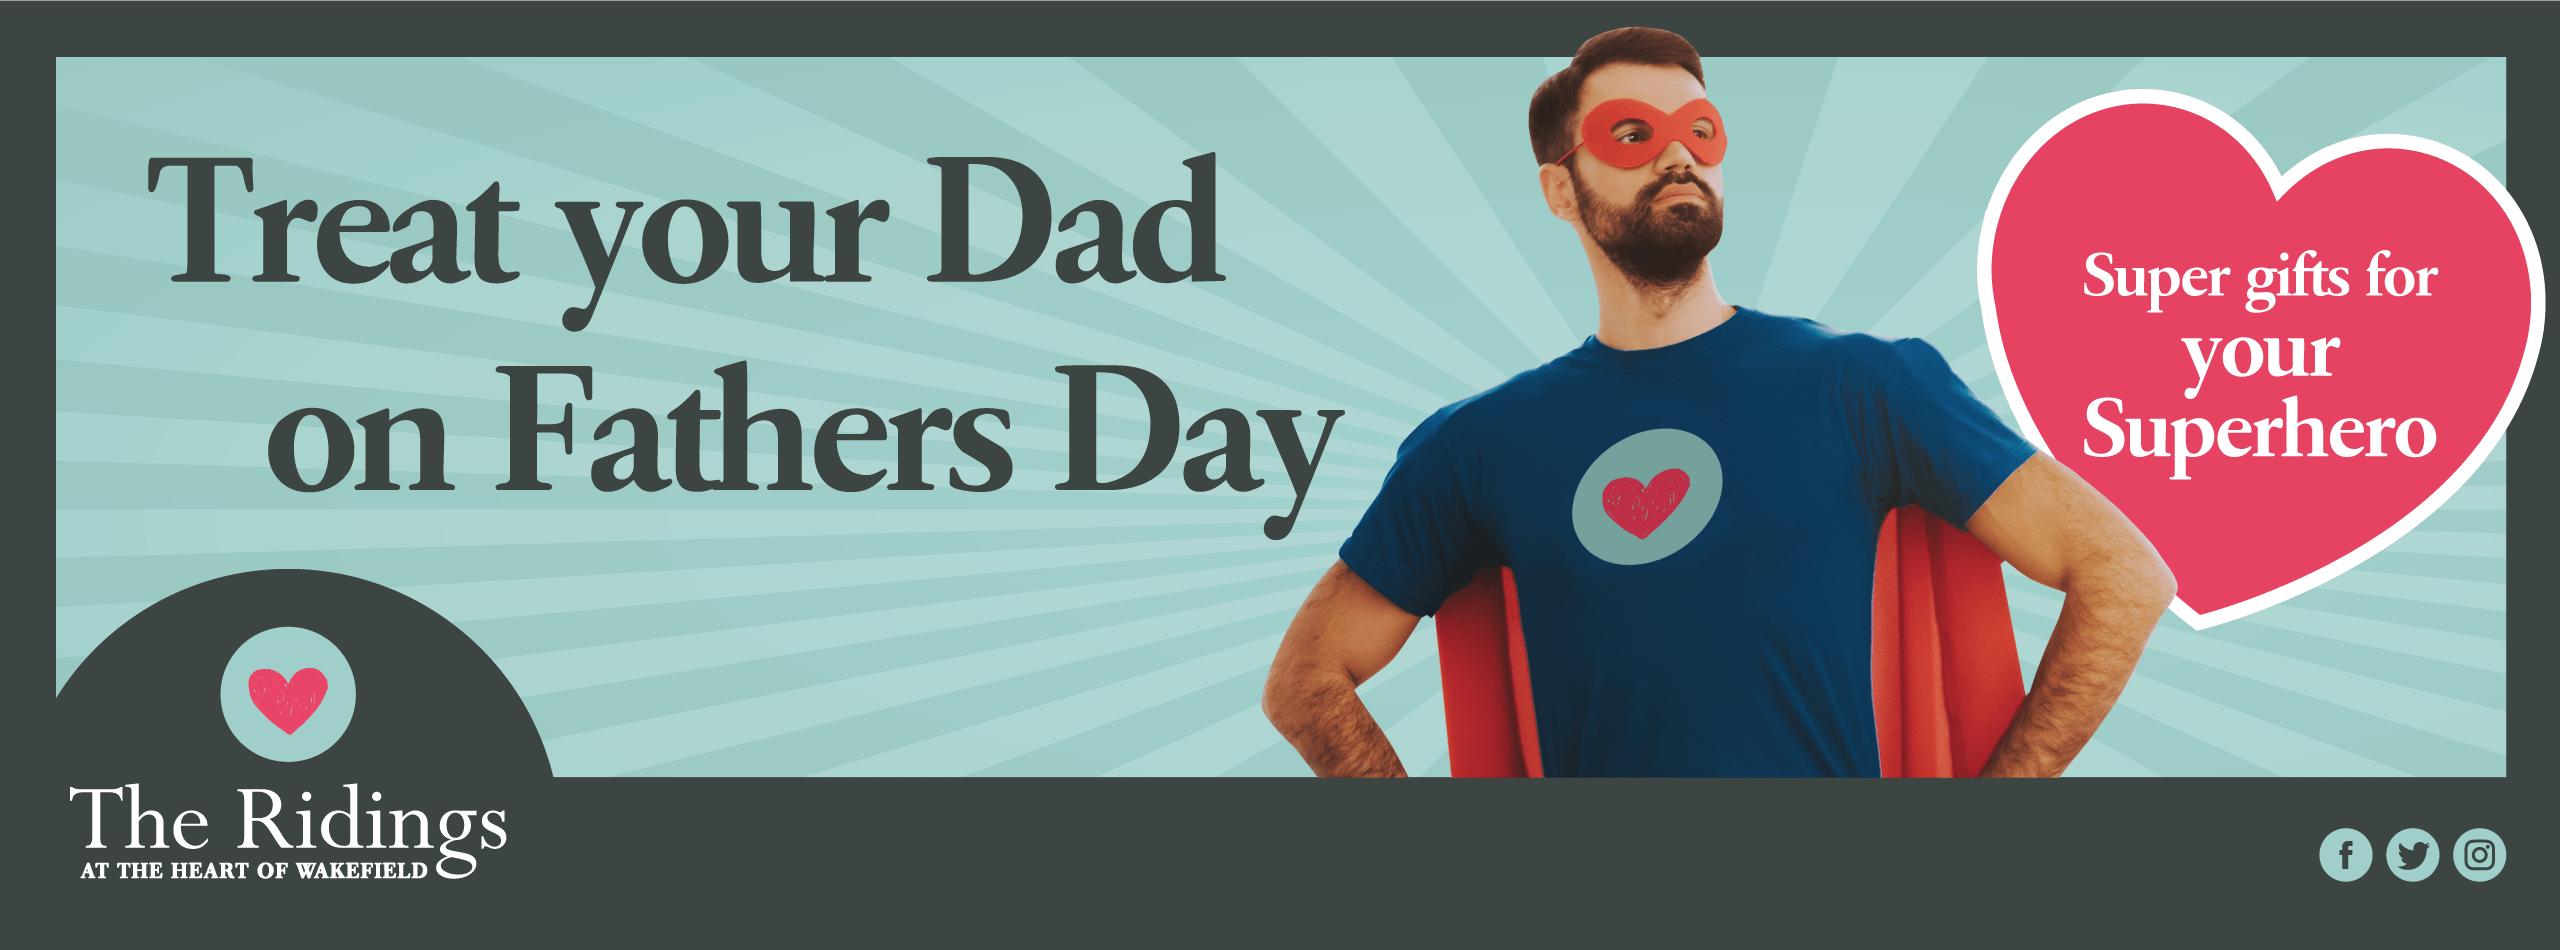 FATHERS-DAY_2019_Ridings-Web-banner_New-Size-2560x950px